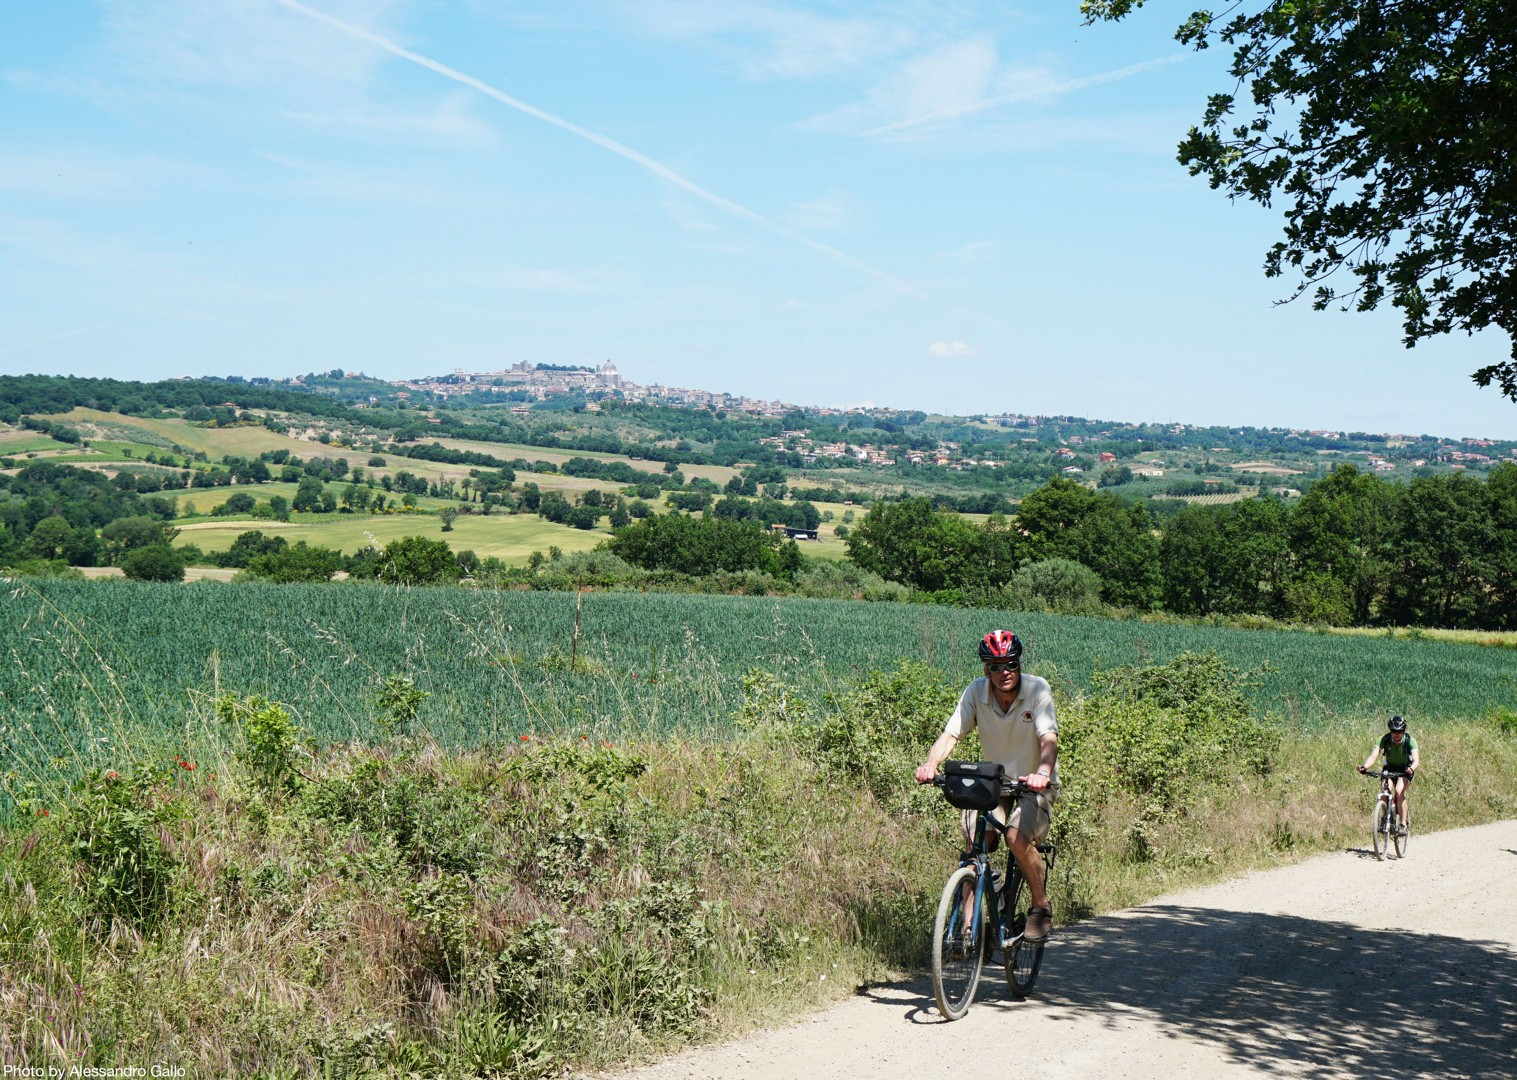 umbria-leisure-cycling-holiday-in-umbria-italy.JPG - Italy - Green Heart of Umbria - Self-Guided Leisure Cycling Holiday - Leisure Cycling